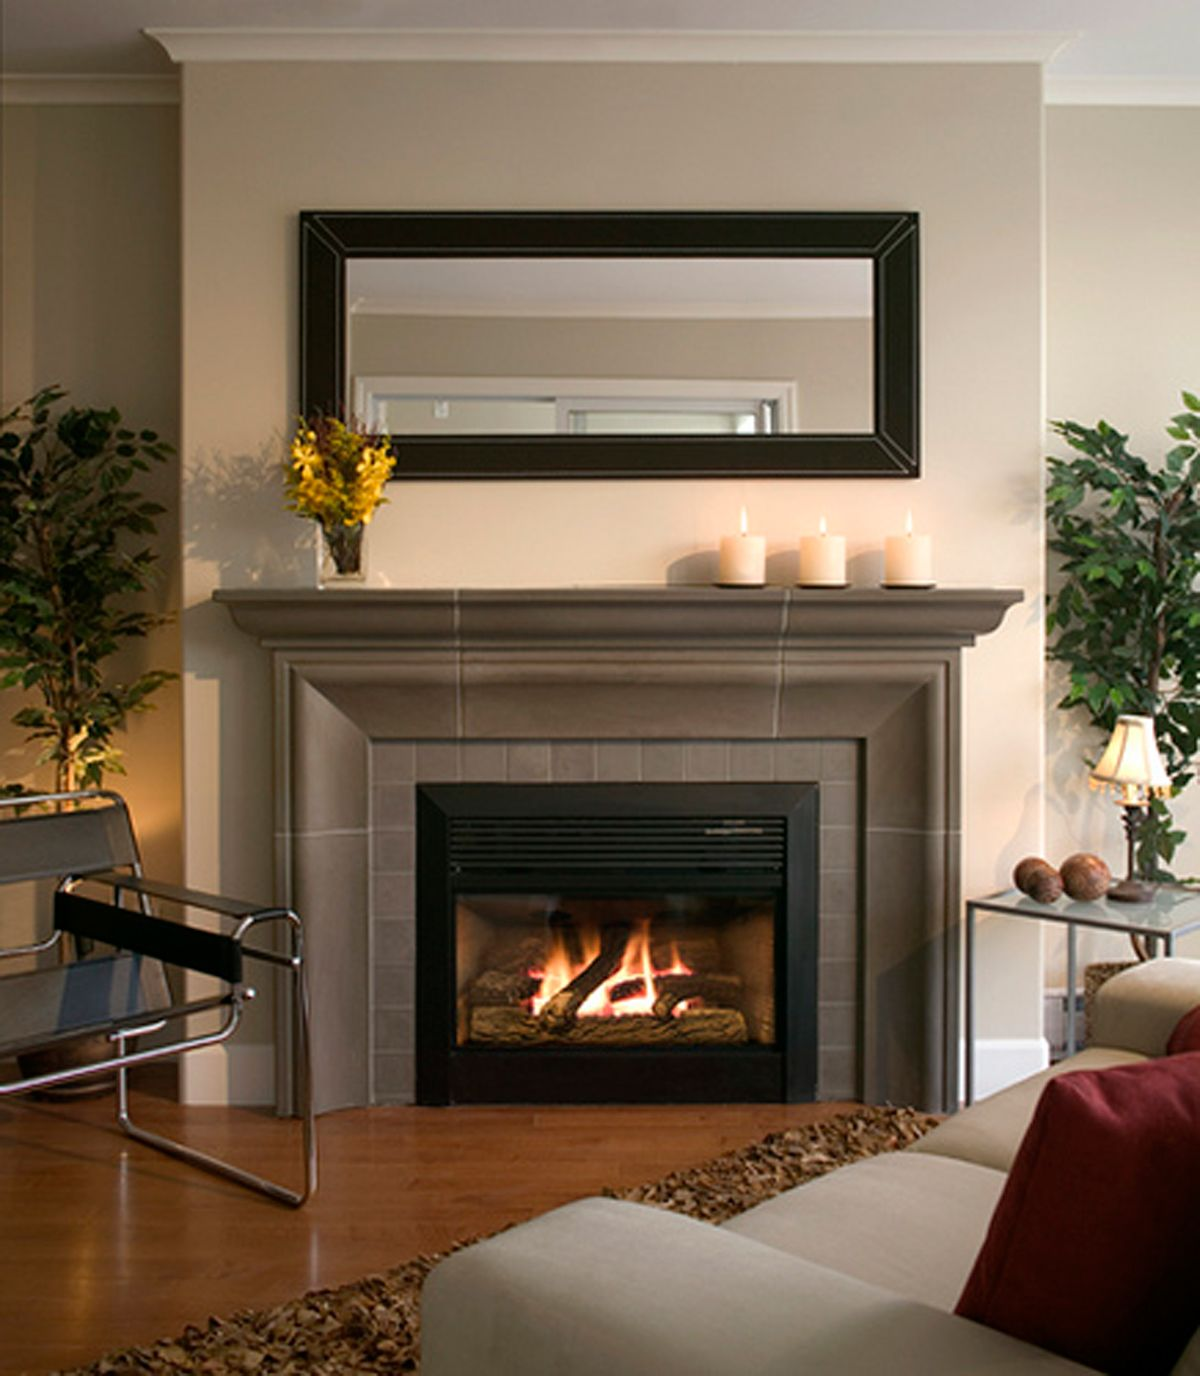 Fireplaces designs contemporary gas fireplace designs Fireplace design ideas